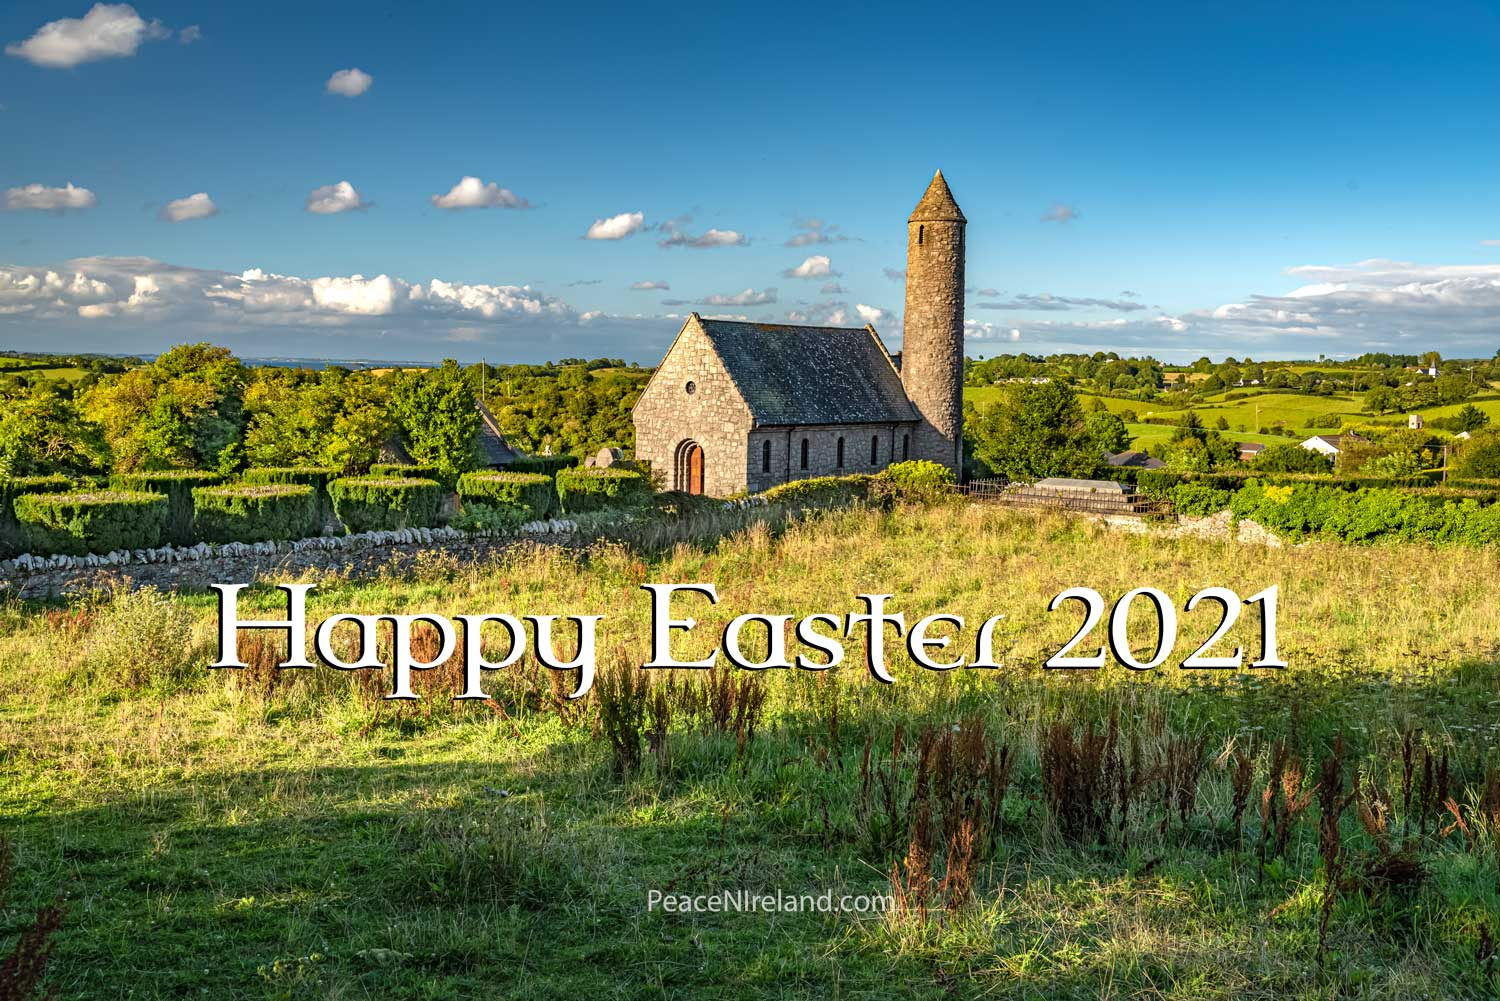 A Very Happy Easter to people of goodwill everywhere. The photo above shows the site of the very first Christian church in Ireland, founded by St Patrick in 432AD, making this the oldest ecclesiastical site in Ireland. It's located at Saul, County Down, in Northern Ireland, just a few miles from where St Patrick's remains are buried at Down Church of Ireland Cathedral, Downpatrick.